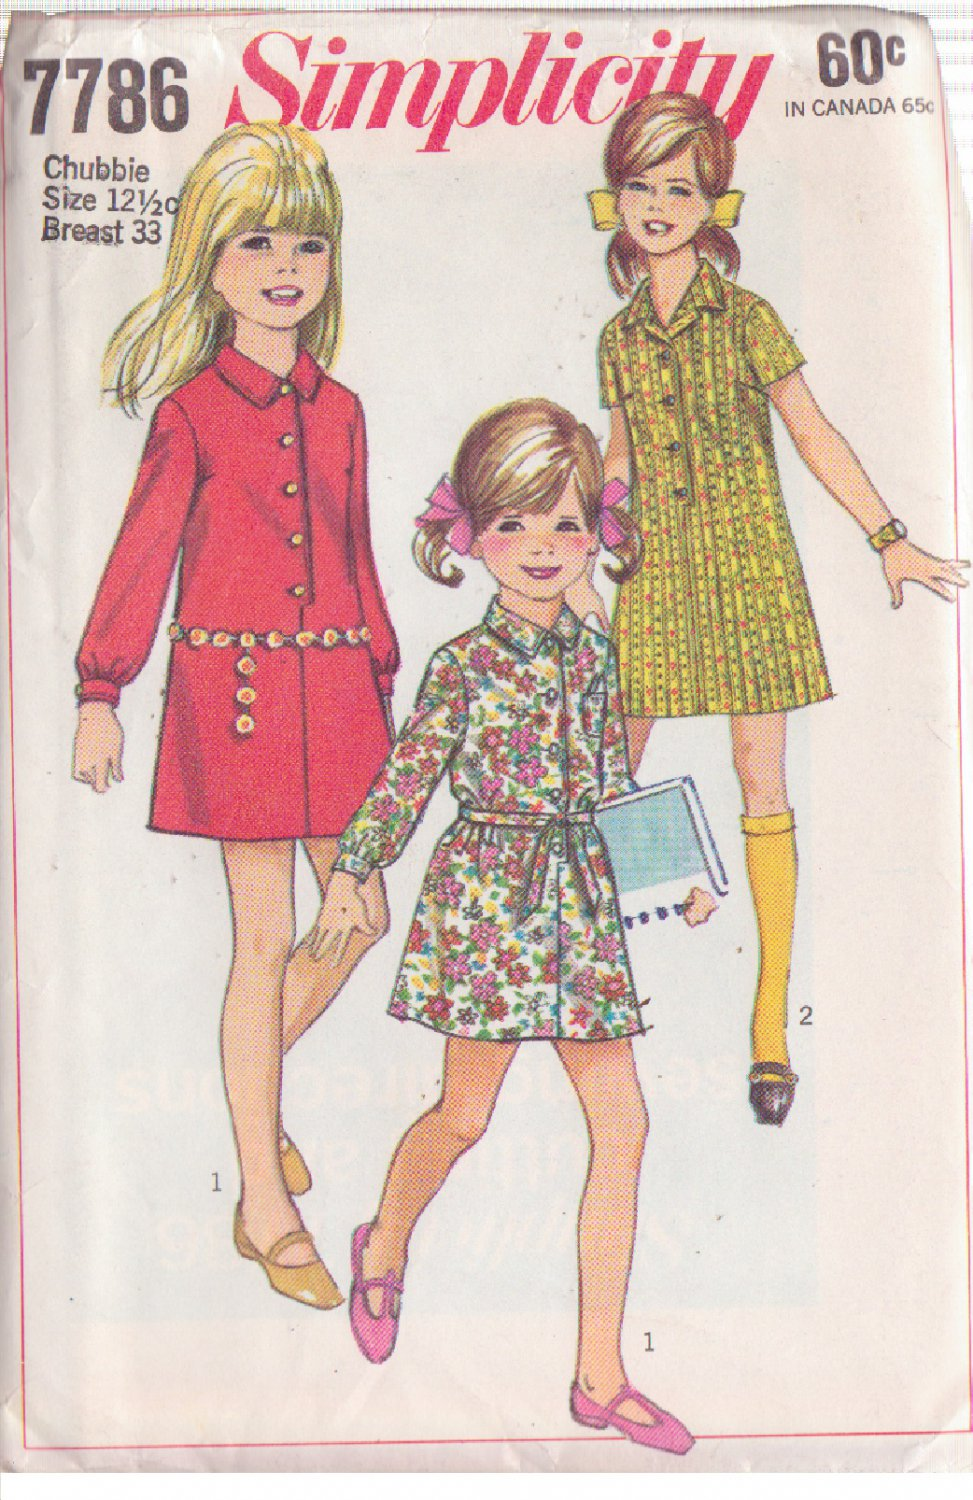 SIMPLICITY PATTERN 7786 GIRLS' SHIRT DRESS IN 2 VARIATIONS CHUBBIE SIZE 12 1/2